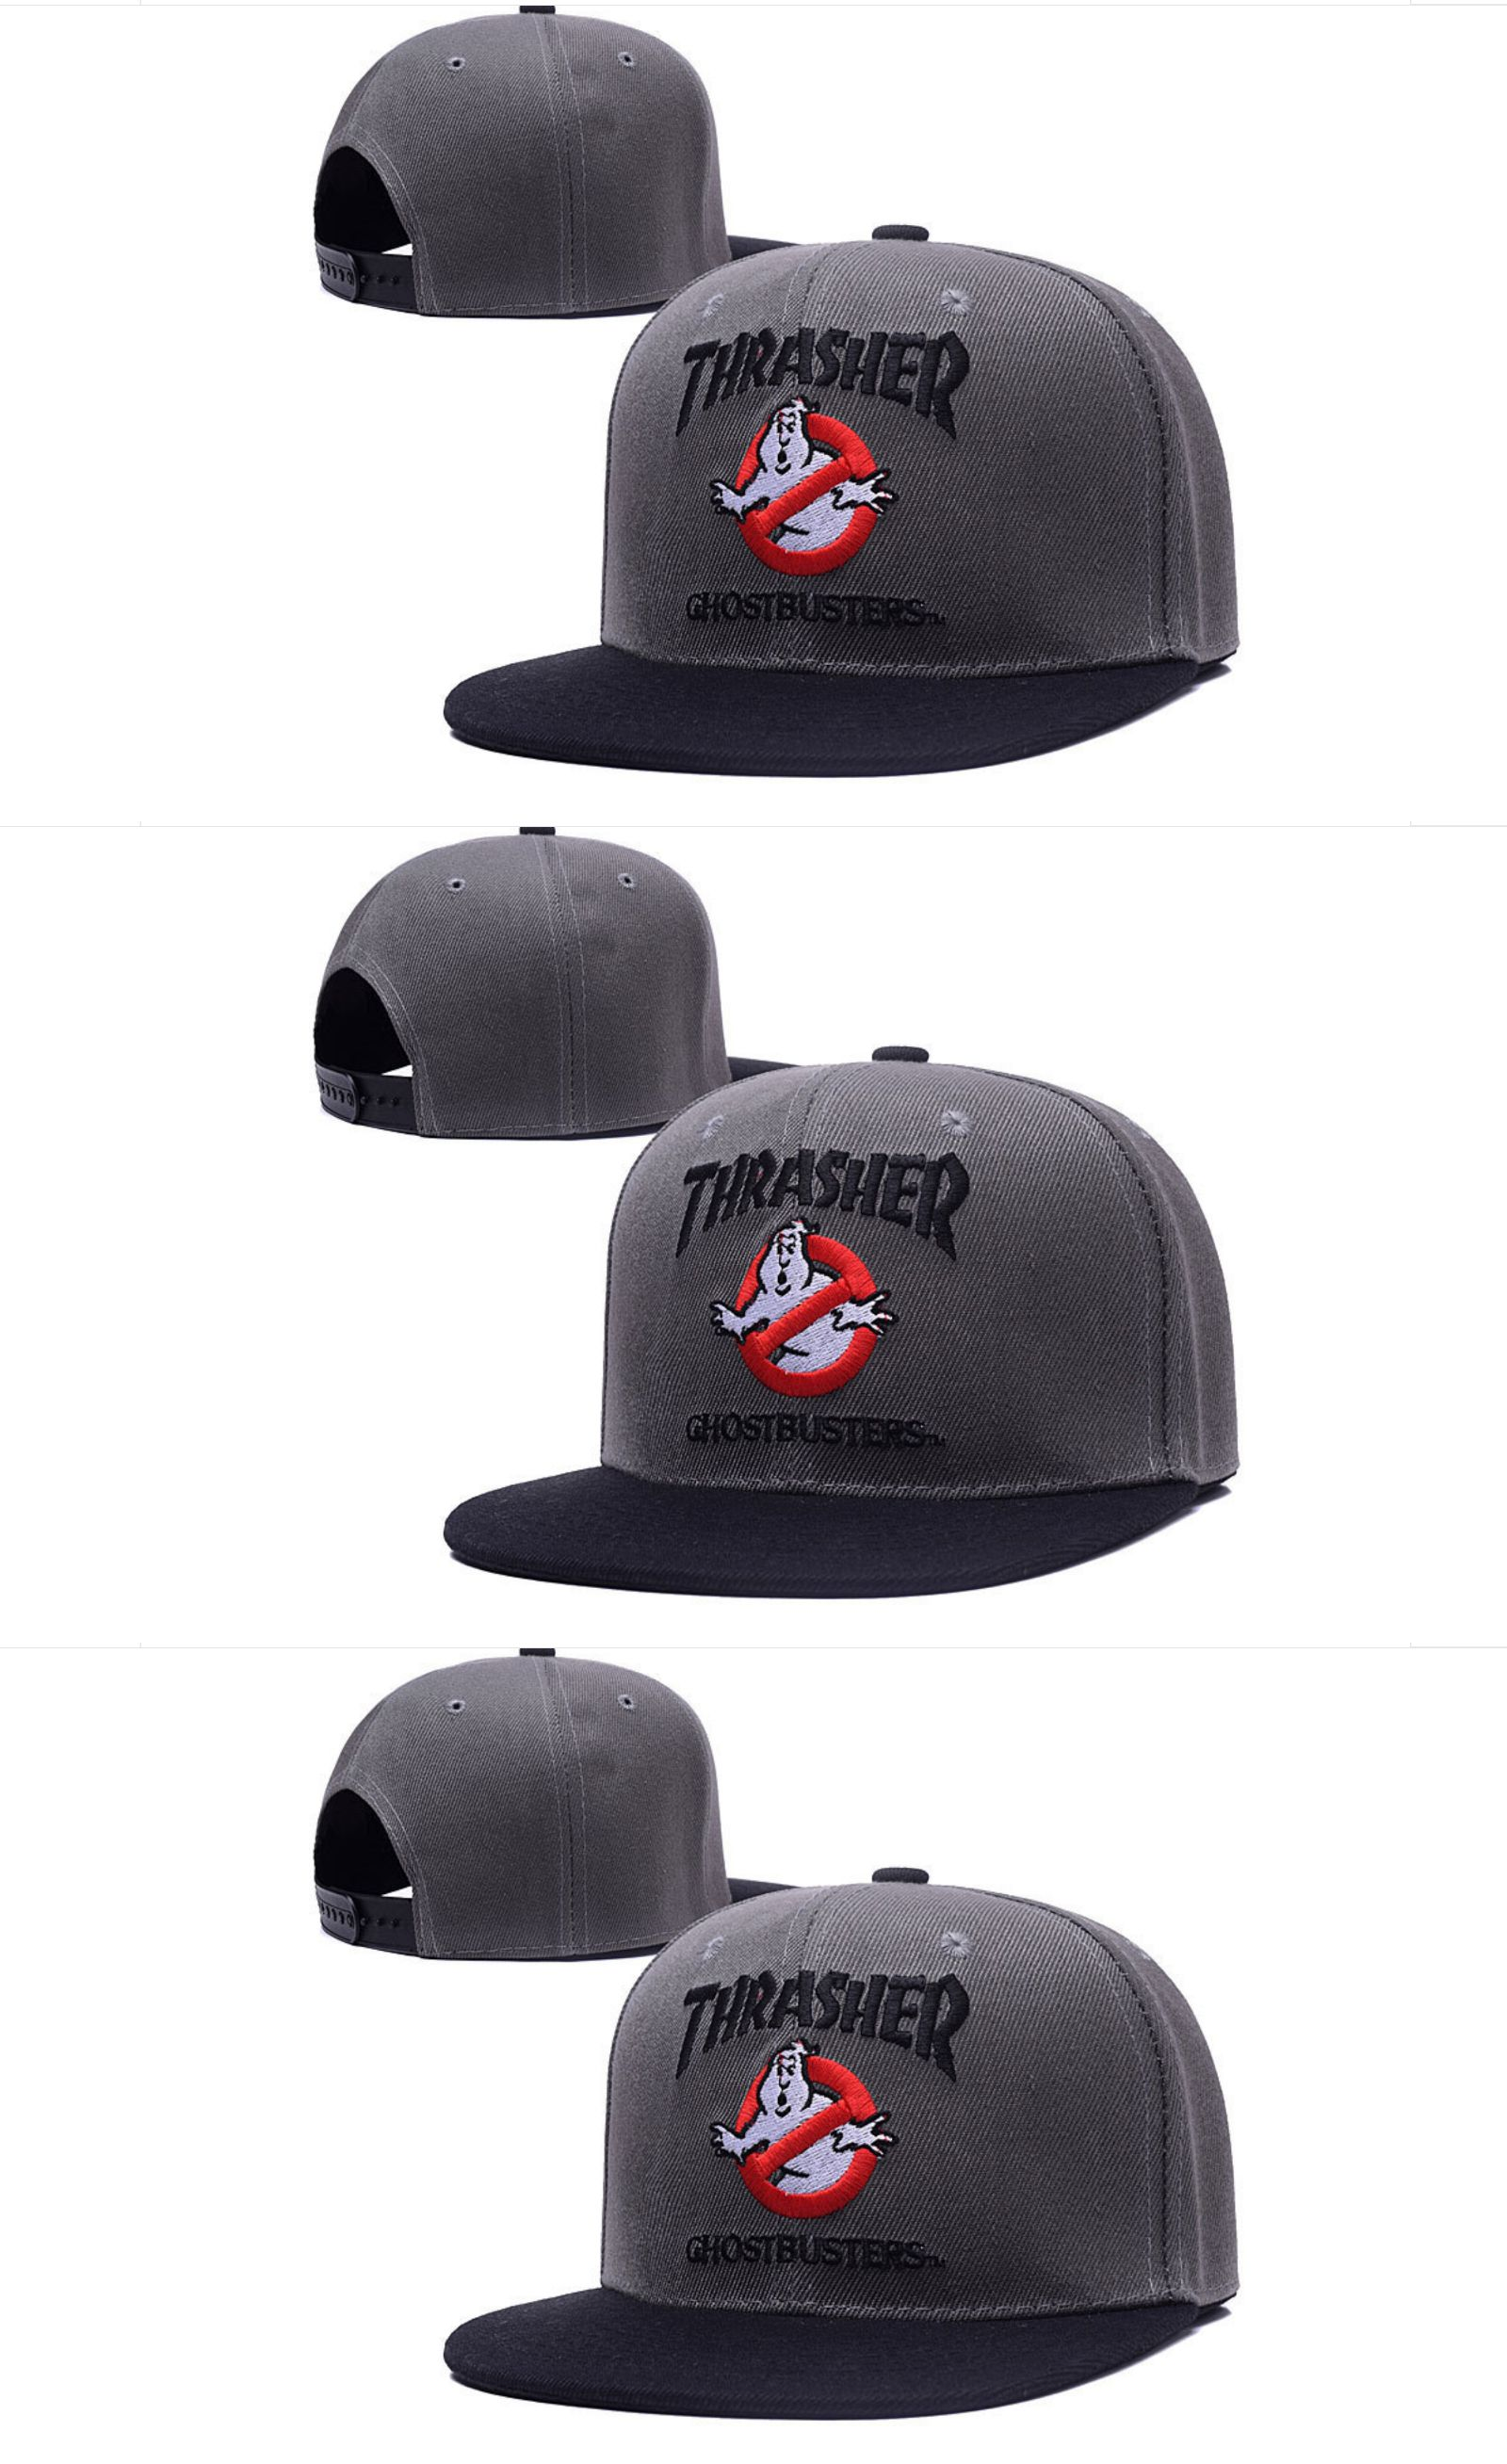 38c4e214134 Clothing Shoes and Accessories 159077  Thrasher Hat Skateboard Snapback  Logo Ghostbusters -  BUY IT NOW ONLY   13.92 on eBay!